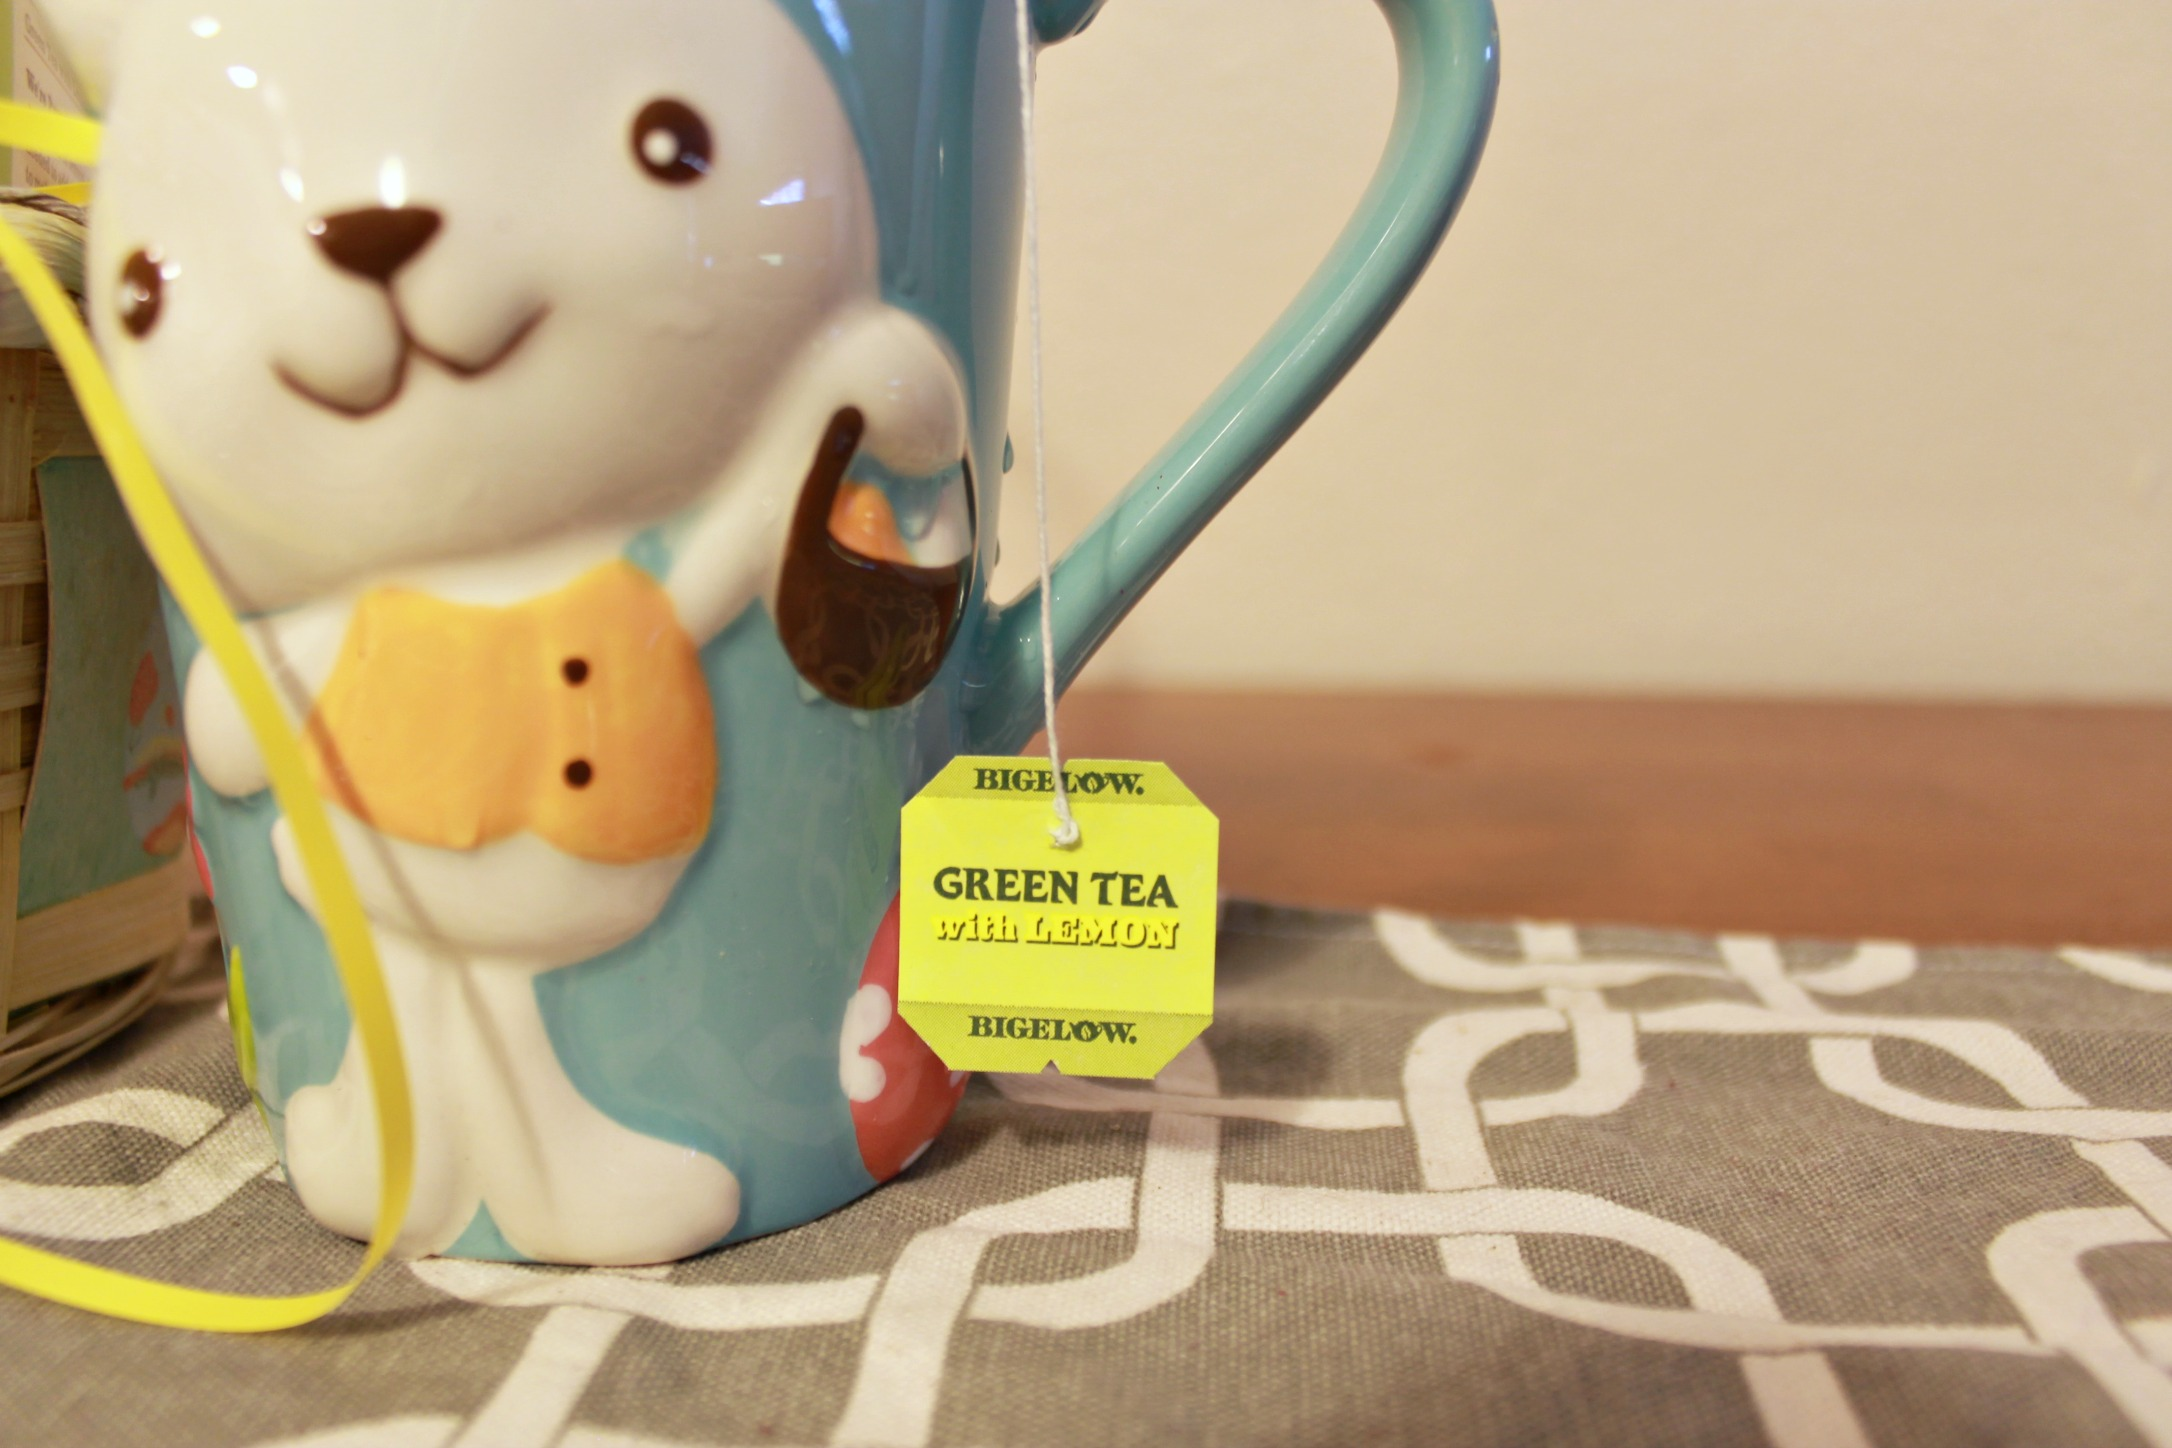 Bigelow Green Tea for Easter #TrendTea #shop #CollectiveBias